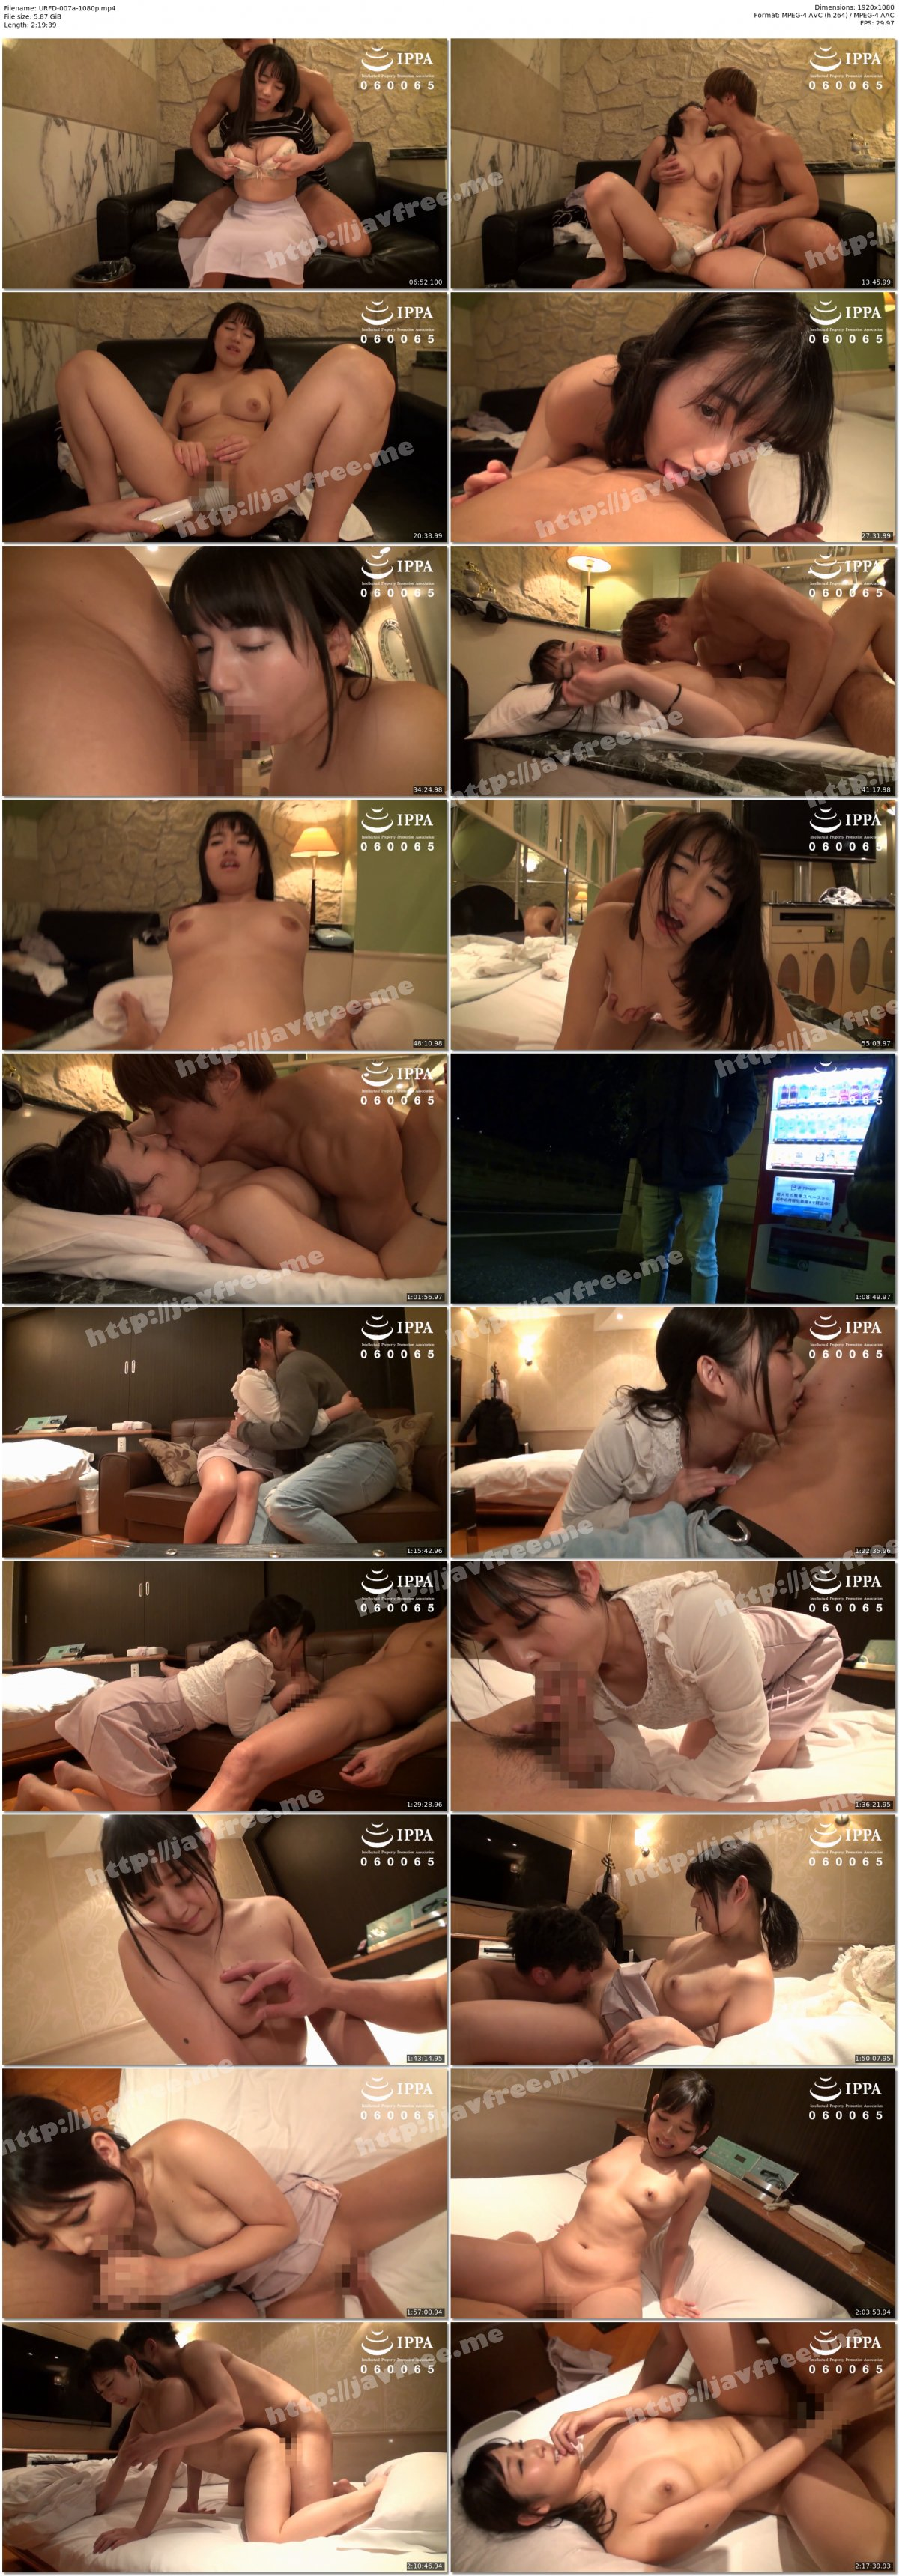 [HD][URFD-007] 全国裏風俗紀行VOL.7 - image URFD-007a-1080p on https://javfree.me